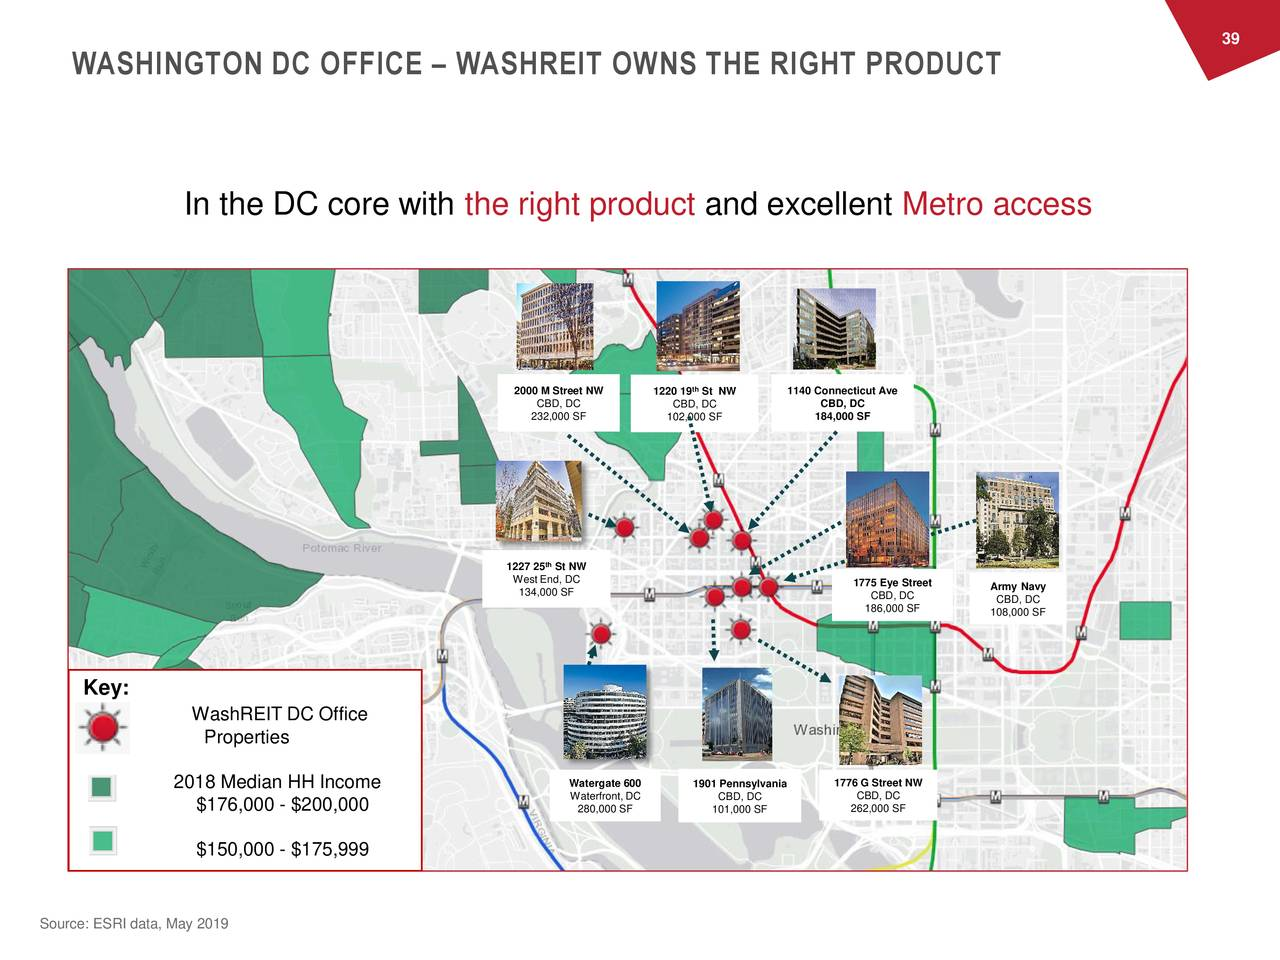 WASHINGTON DC OFFICE – WASHREIT OWNS THE RIGHT PRODUCT THE DC METRO REGION Where to be in DC In the DC core with the right product and excellent Metro access 2000 M Street NW 1220 19 St NW 1140 Connecticut Ave CBD, DC CBD, DC CBD, DC 232,000 SF 102,000 SF 184,000 SF 1227 25 St NW West End, DC 1775 Eye Street Army Navy 134,000 SF CBD, DC CBD, DC 186,000 SF 108,000 SF Key: WashREIT DC Office Properties 2018 Median HH Income Waterfront, DC 1901CBD, DClvania 177CBD, DCeet NW $176,000 - $200,000 280,000 SF 101,000 SF 262,000 SF $150,000 - $175,999 Source: ESRI data, May 2019